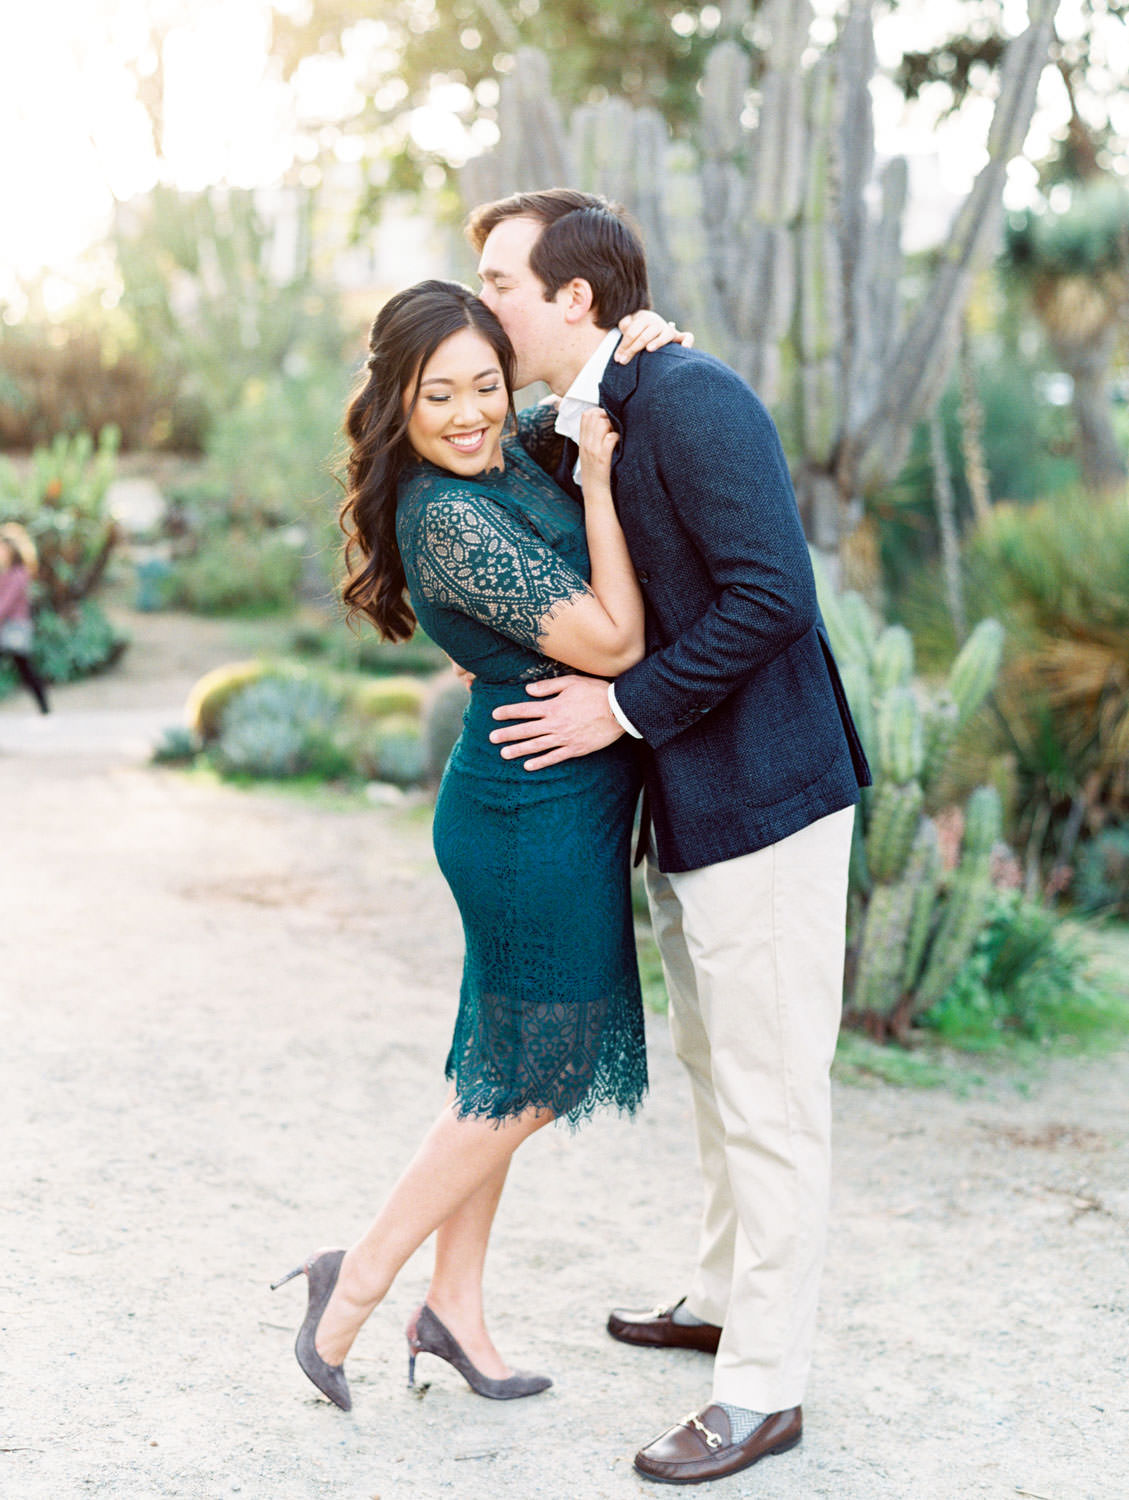 Bride wearing dark teal lace cut dress with curled hair and soft makeup being kissed by Groom in navy wool suit jacket and khakis, Balboa Park cactus garden engagement film photos by Cavin Elizabeth Photography